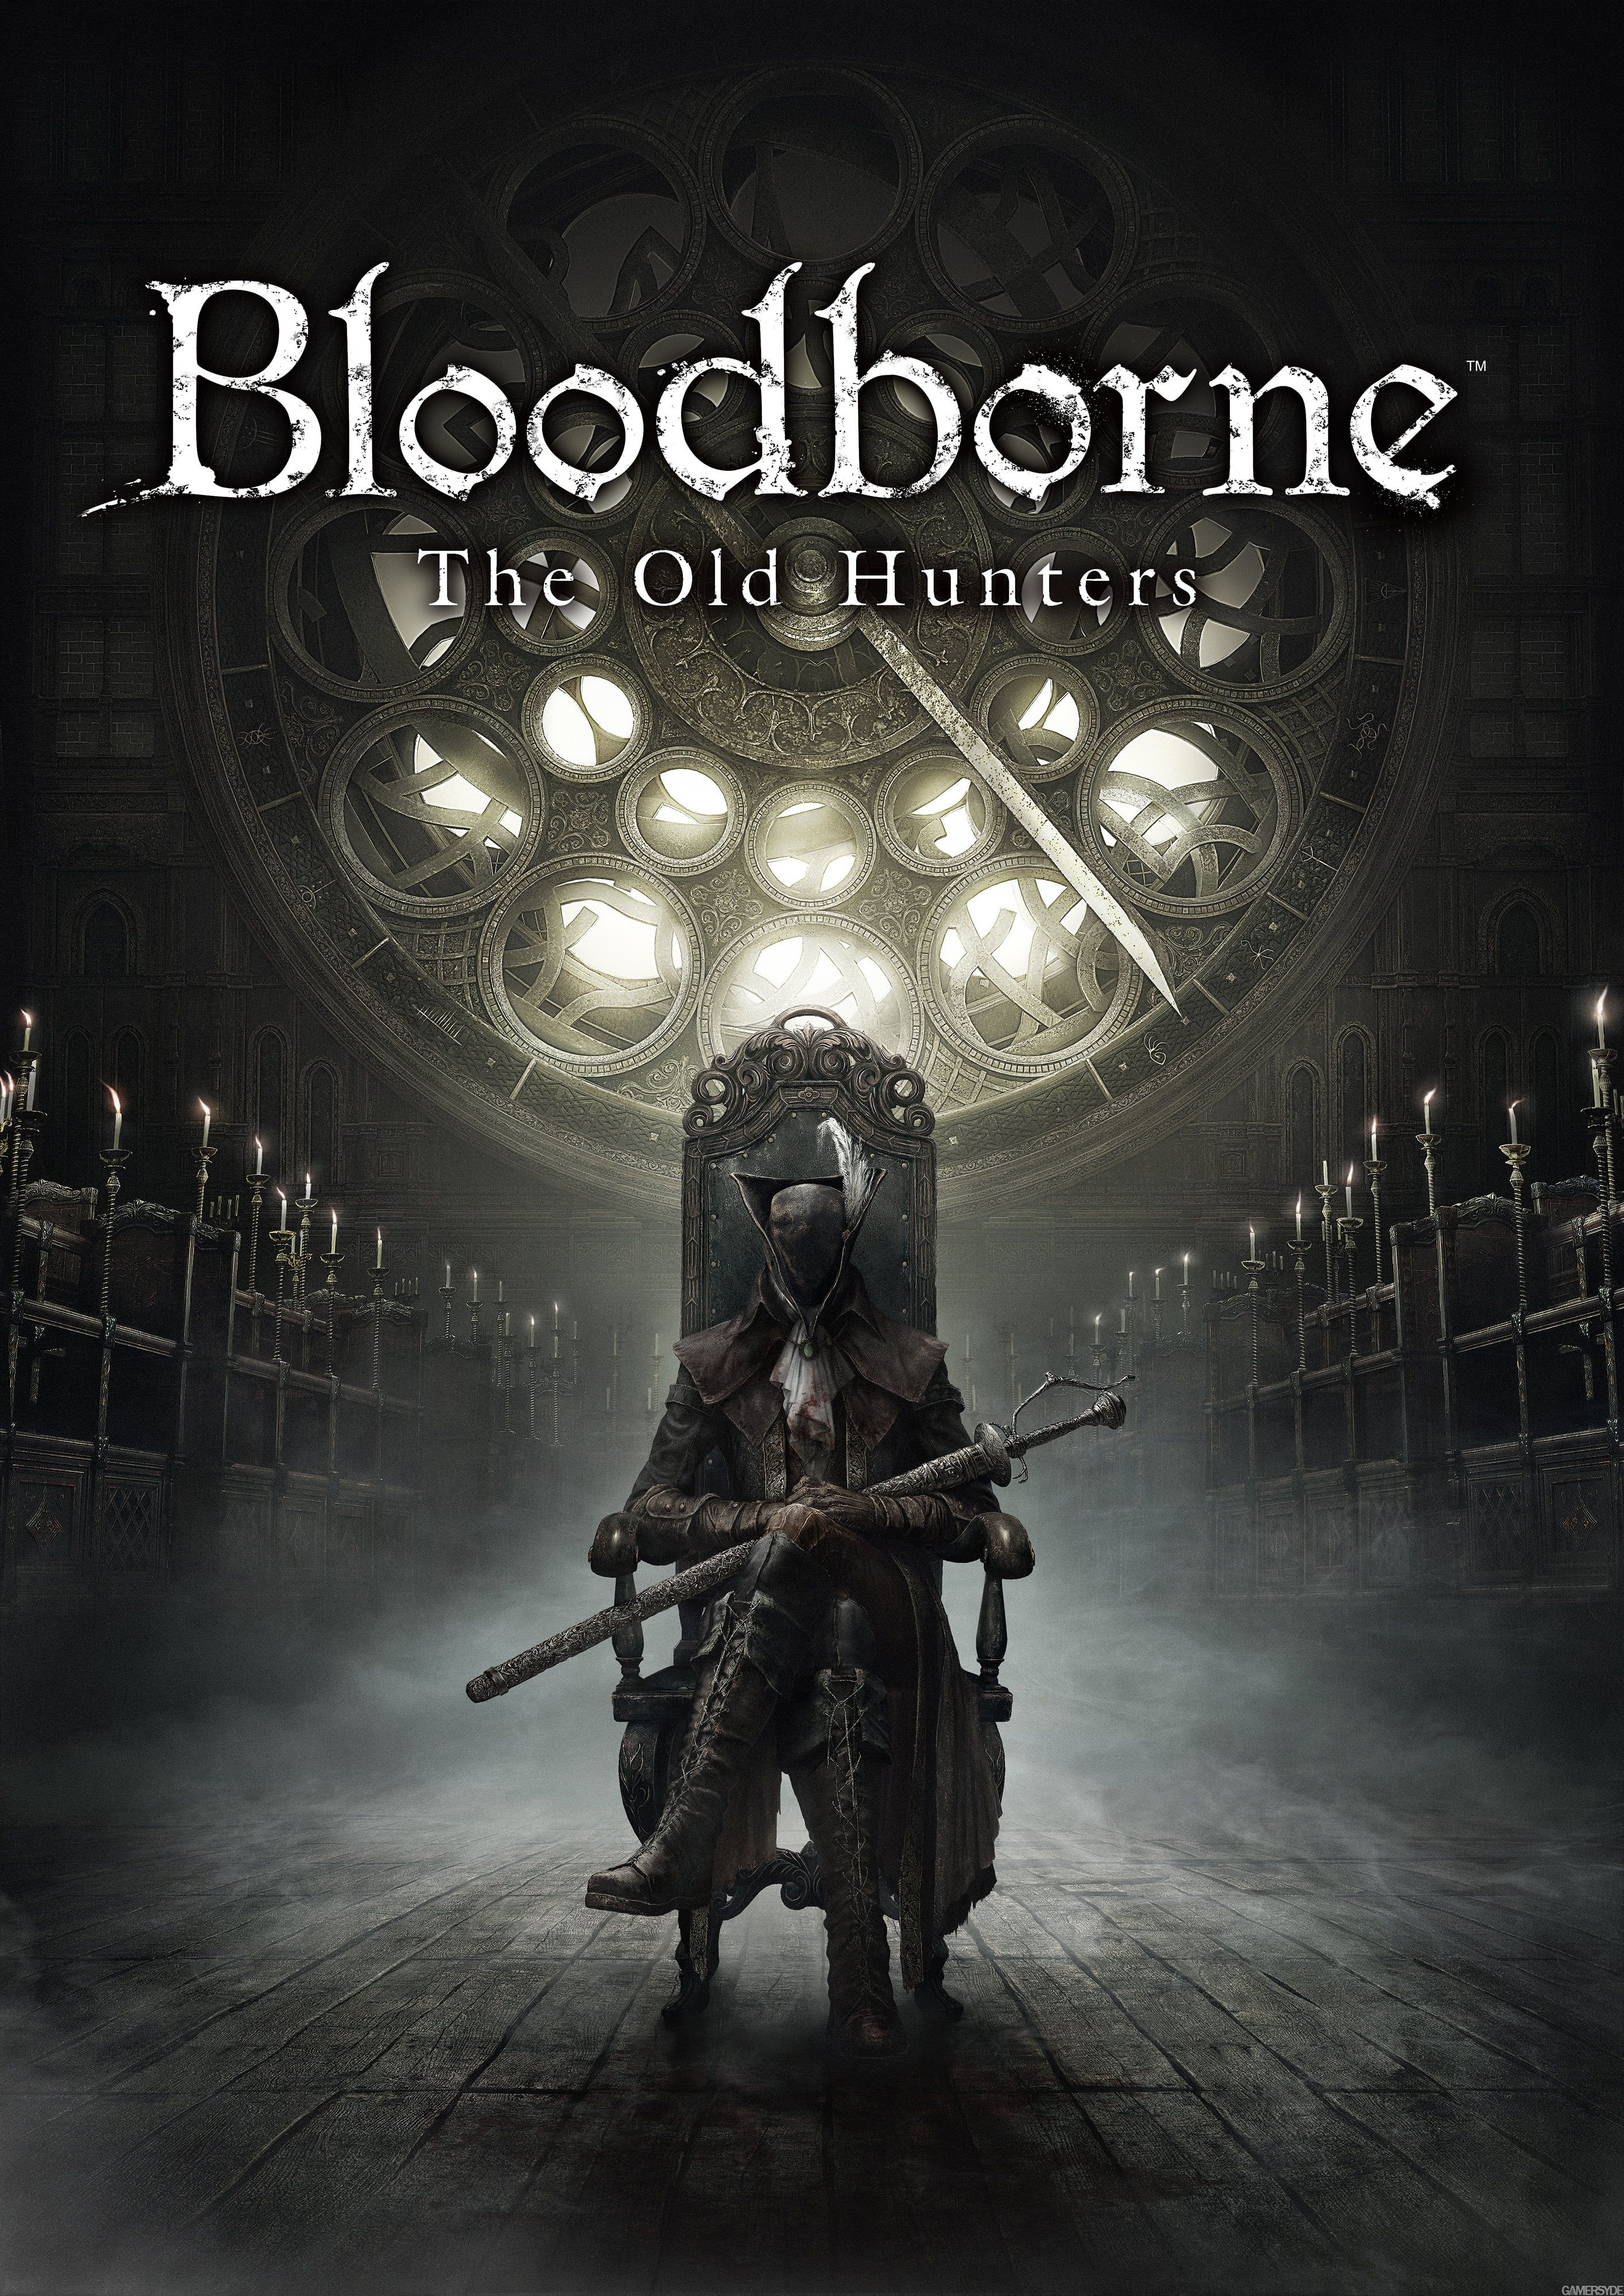 Bloodborne The Old Hunters Wallpaper Bloodborne 4k Wallpaper Hdwallpaper Desktop In 2020 Bloodborne Bloodborne Art Video Game Posters